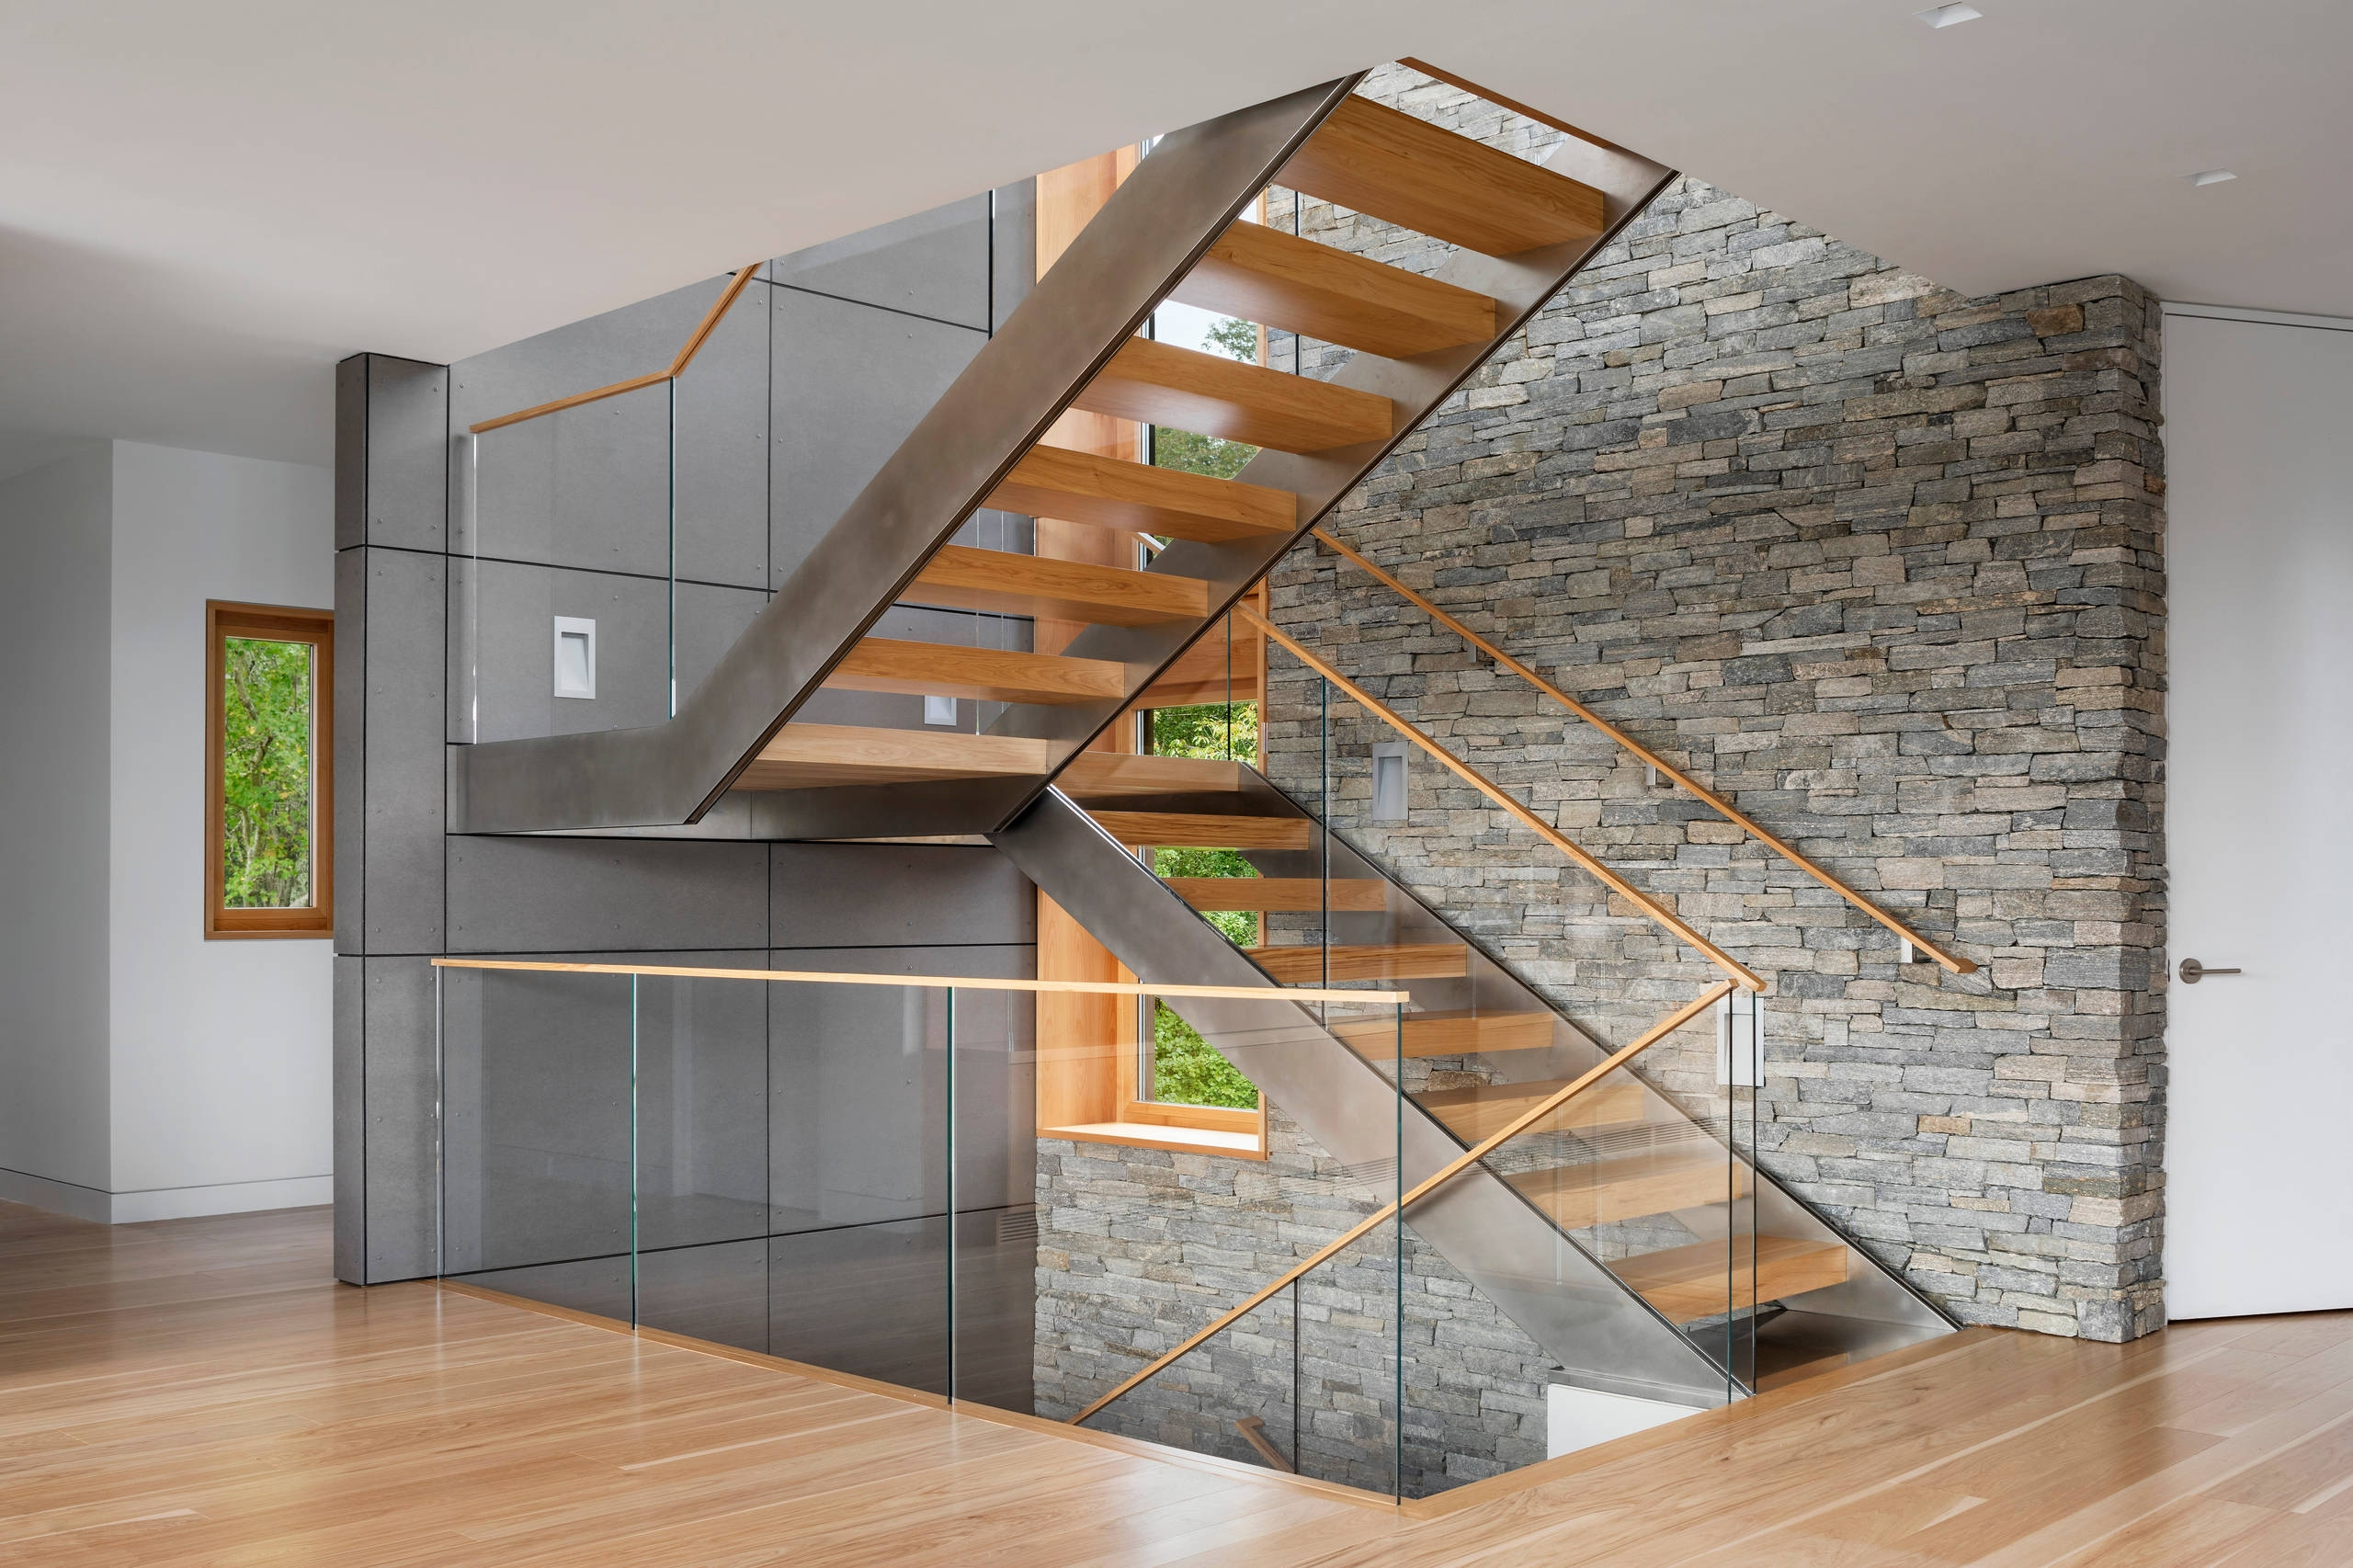 75 Beautiful Modern Staircase Pictures Ideas September 2020 | Designer Stairs For Houses | Cool | Contemporary | Fancy | Residential | Interior